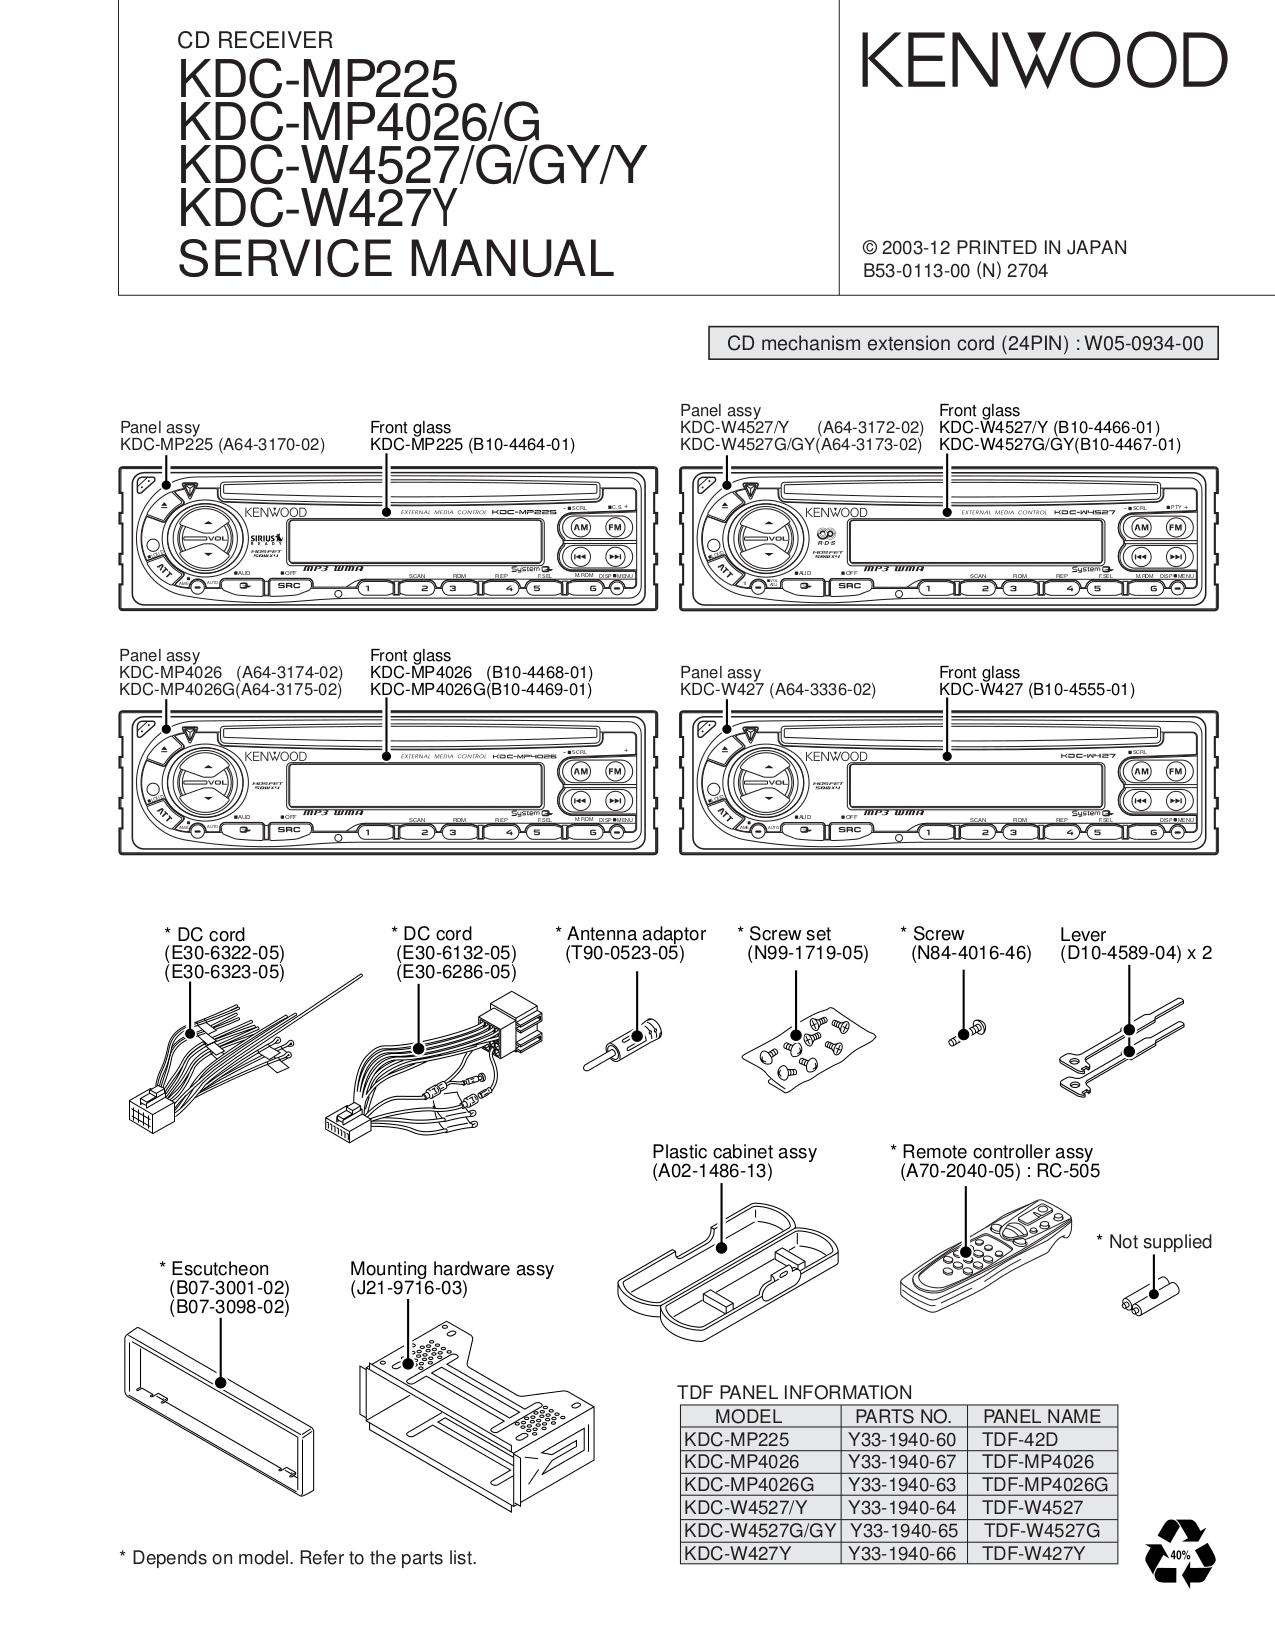 Wiring Diagram For A Kenwood Kdc 148 : Kenwood kdc mp wiring harness diagram